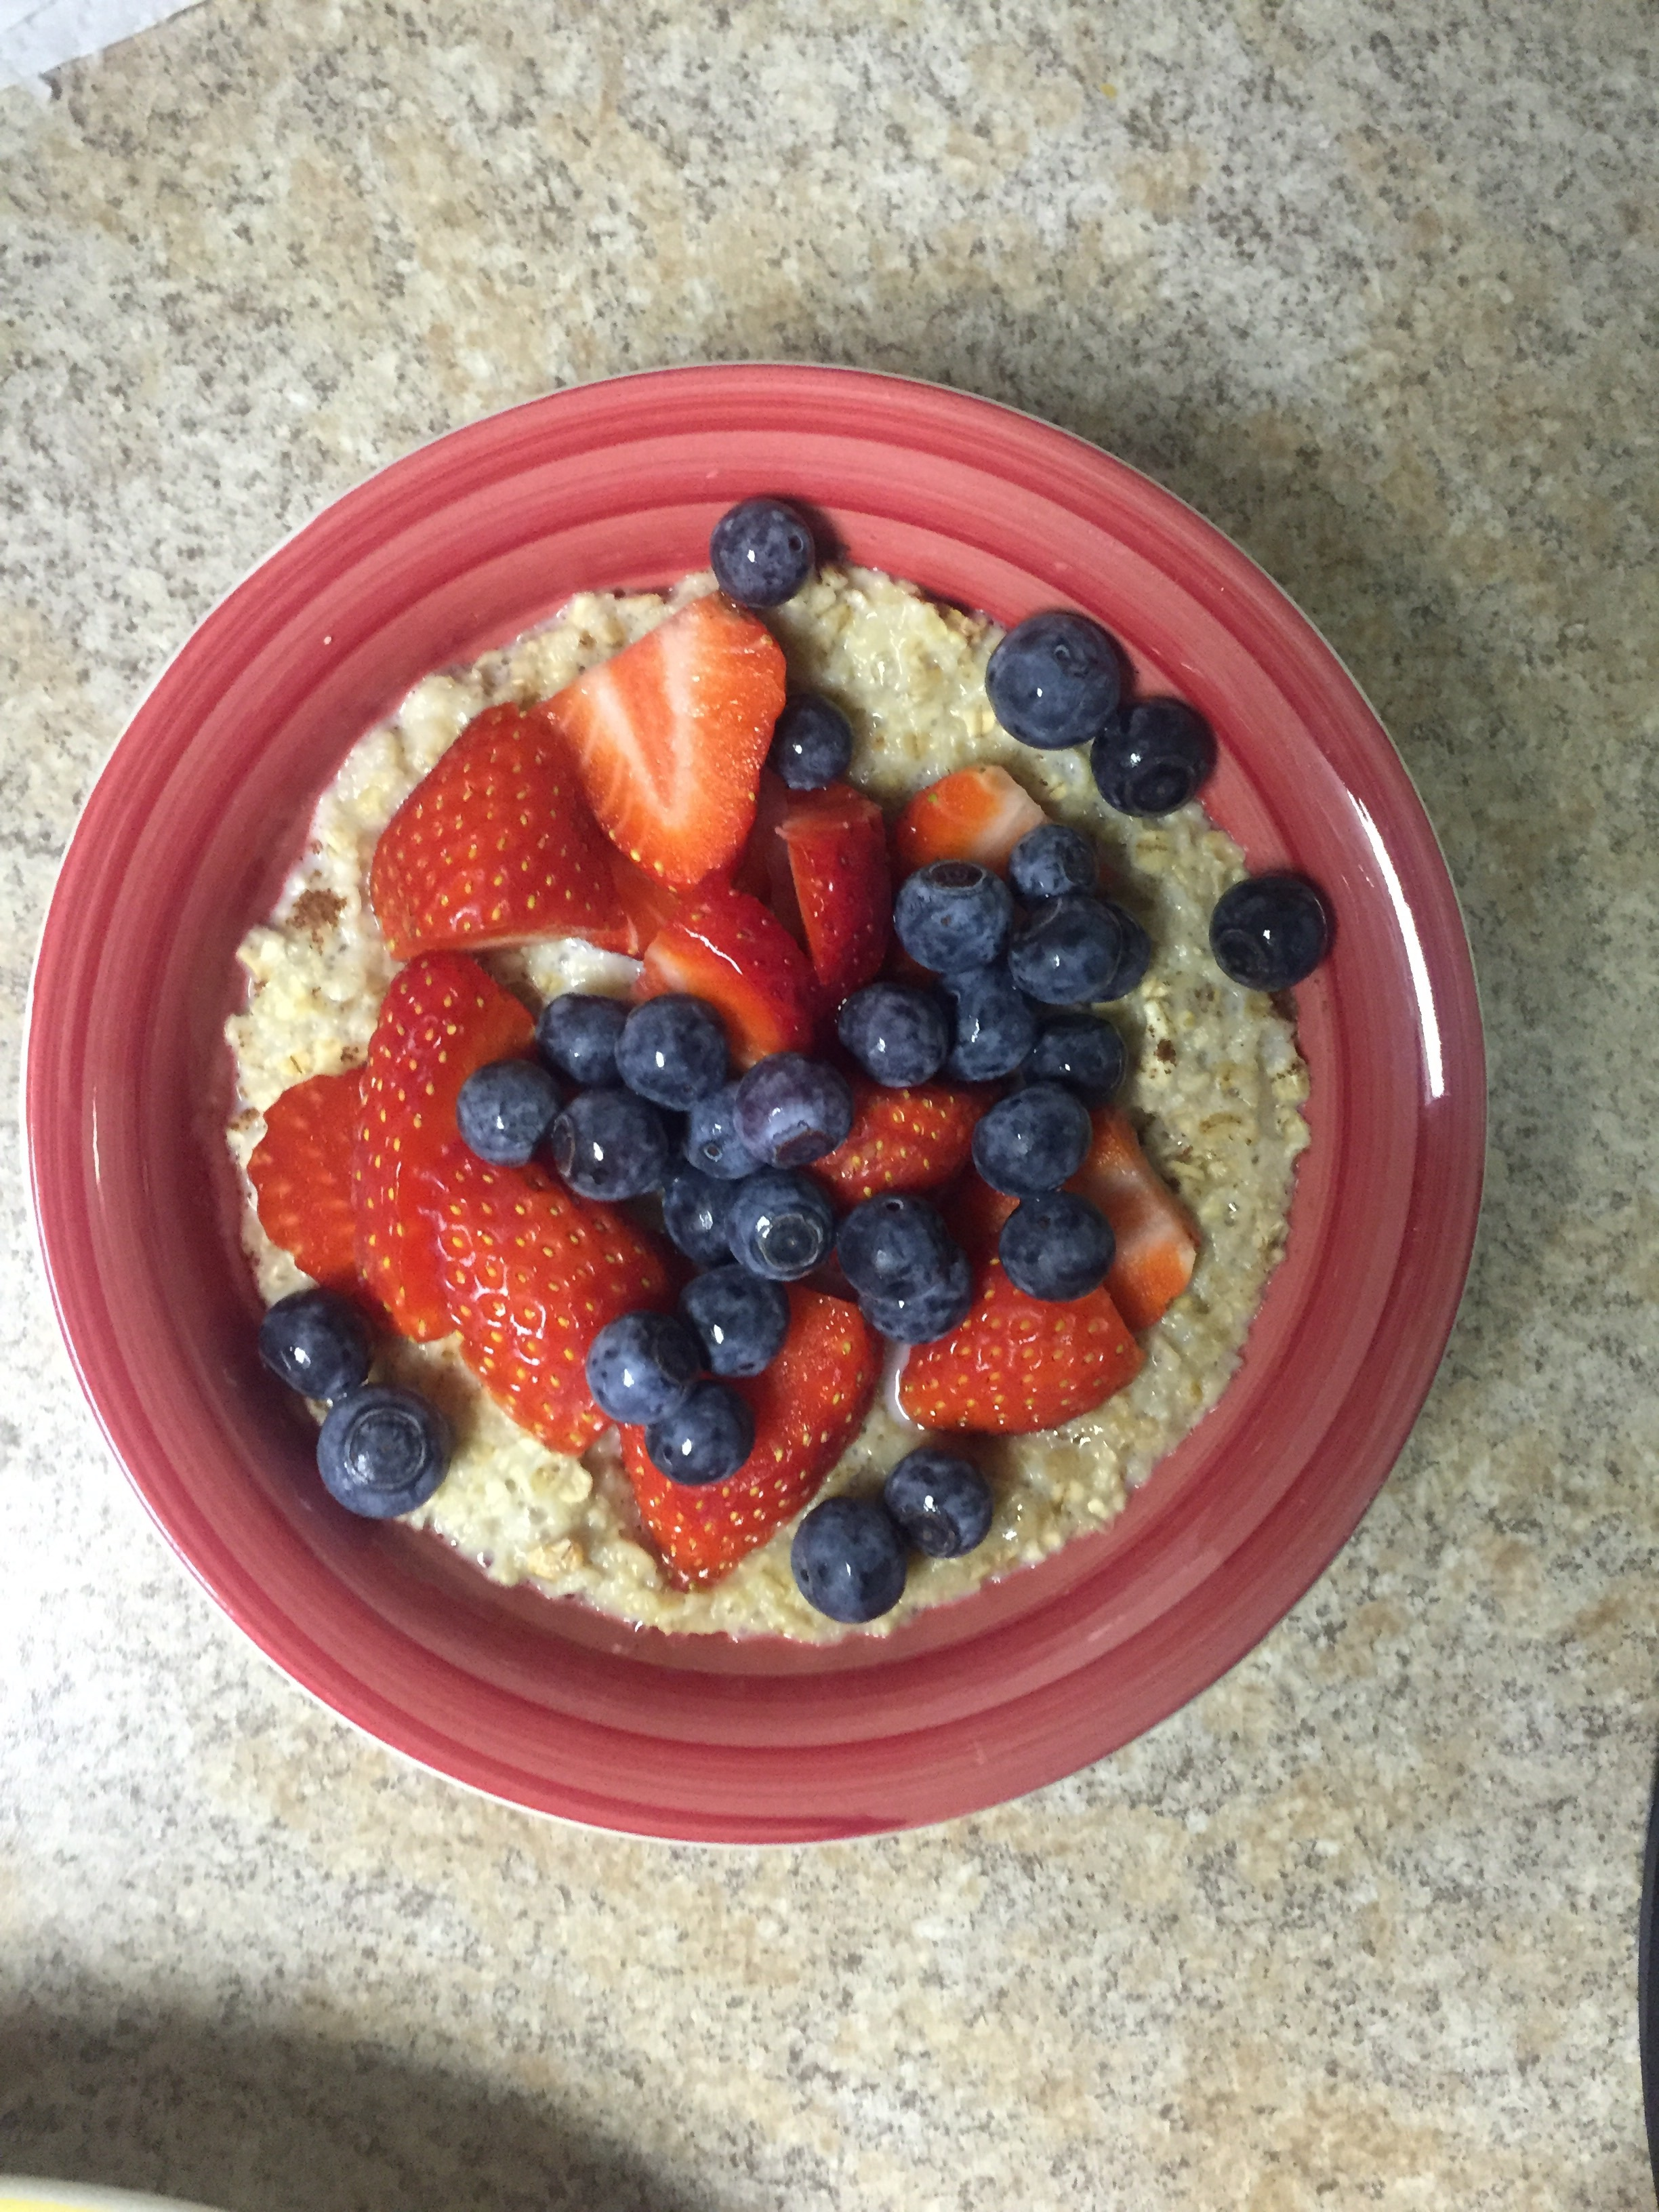 Oatmeal is also part of the morning breakfast regimen. Thanks to the fruit, I don't miss the sugar.